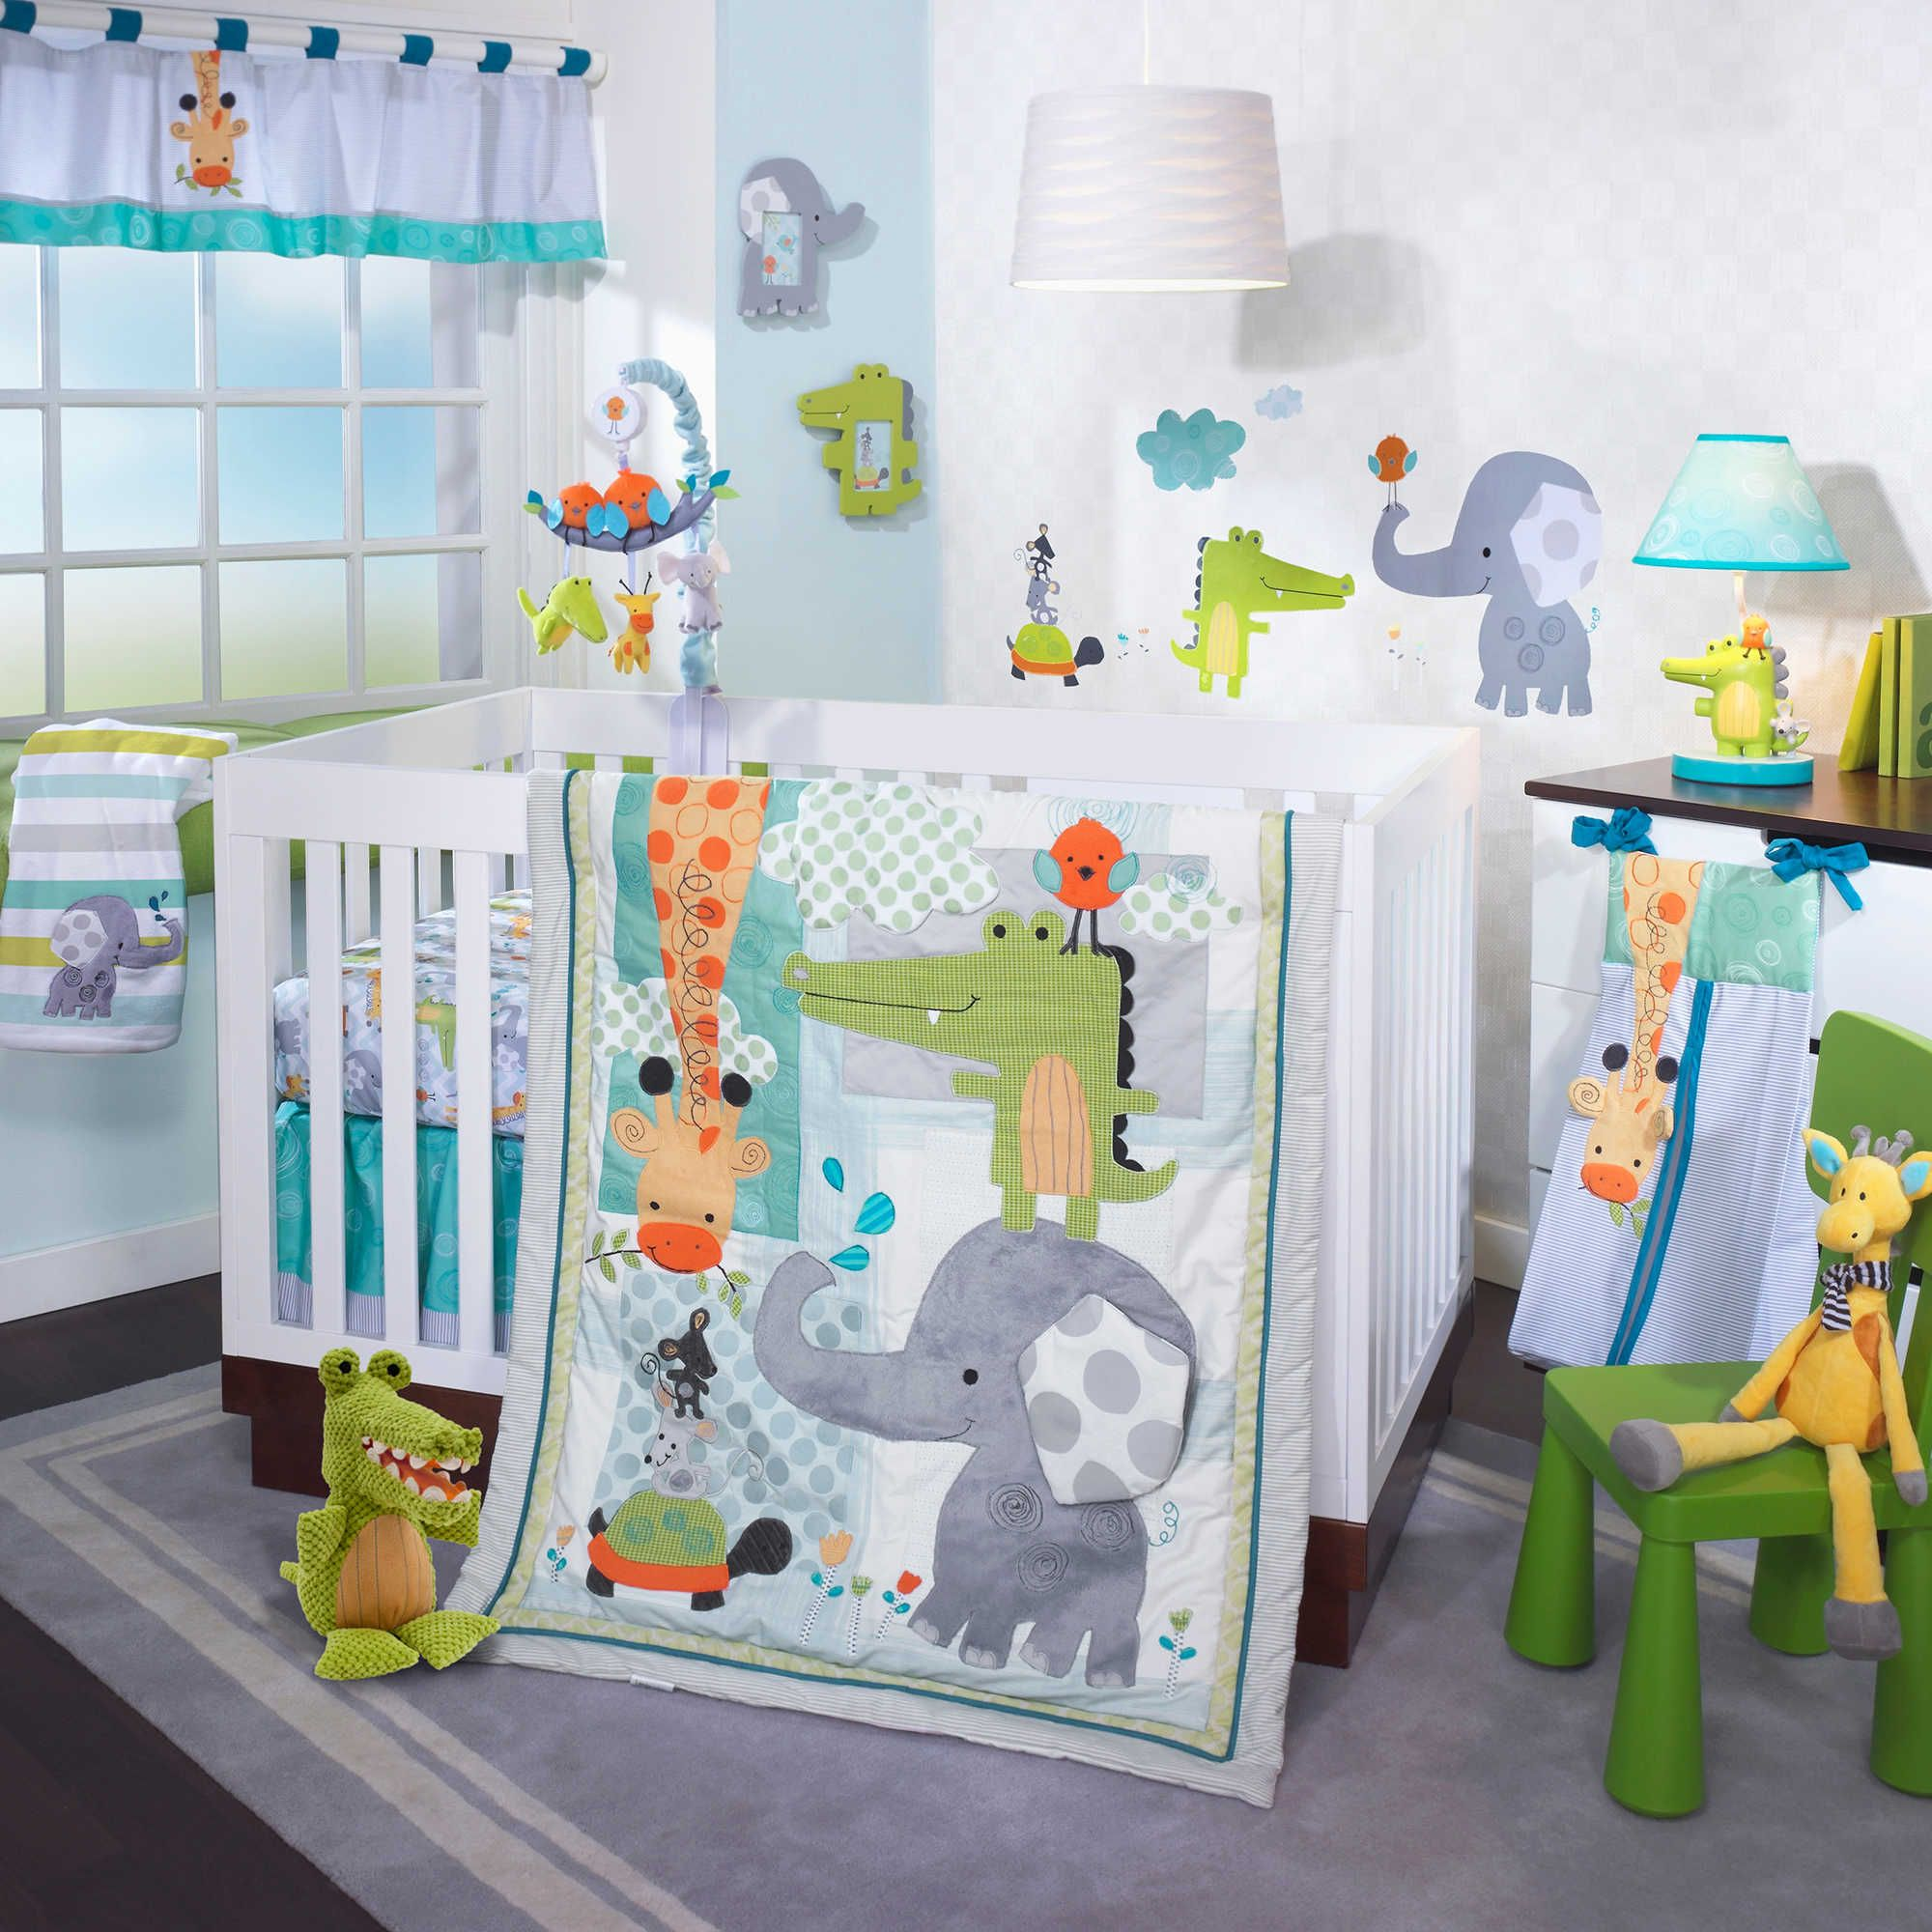 Lambs & Ivy's charming Yoo-Hoo Crib Bedding Collection is sure to delight your little one with its menagerie of adorable animals and fresh, fun colors.